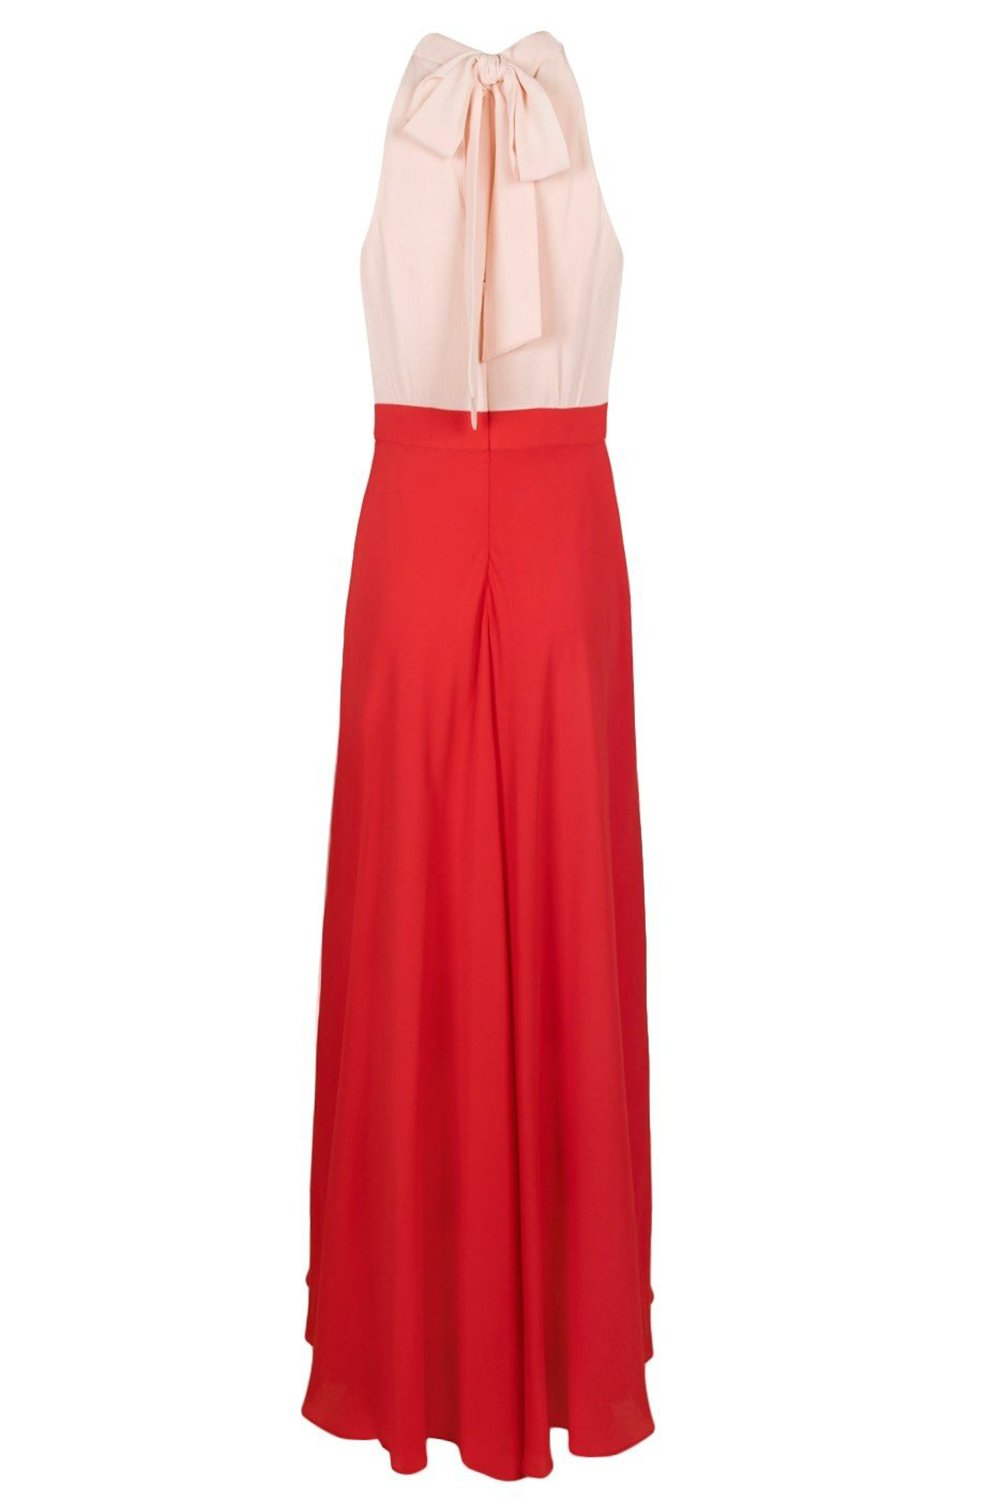 Laundry - HP03W47 High Halter Chiffon A-line Dress In Pink and Red